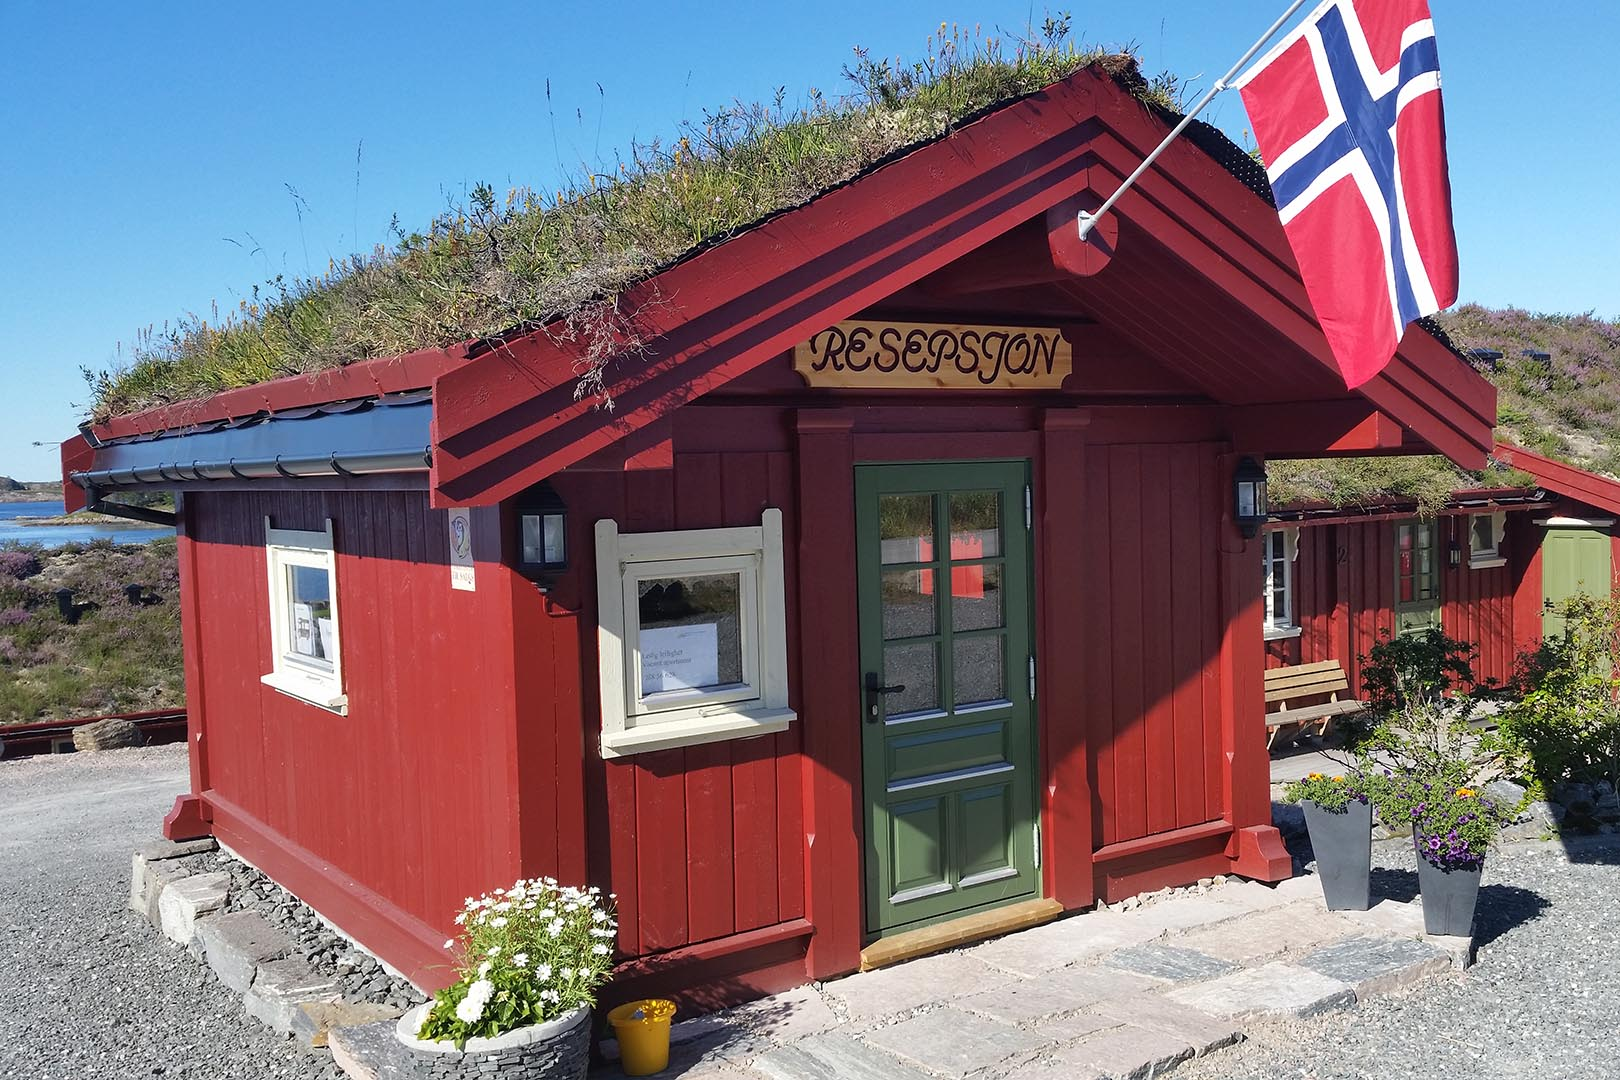 Atlanterhavsveien Sjøstuer: Accommodation at the gateway to the Atlantic Ocean Road, Scan Magazine